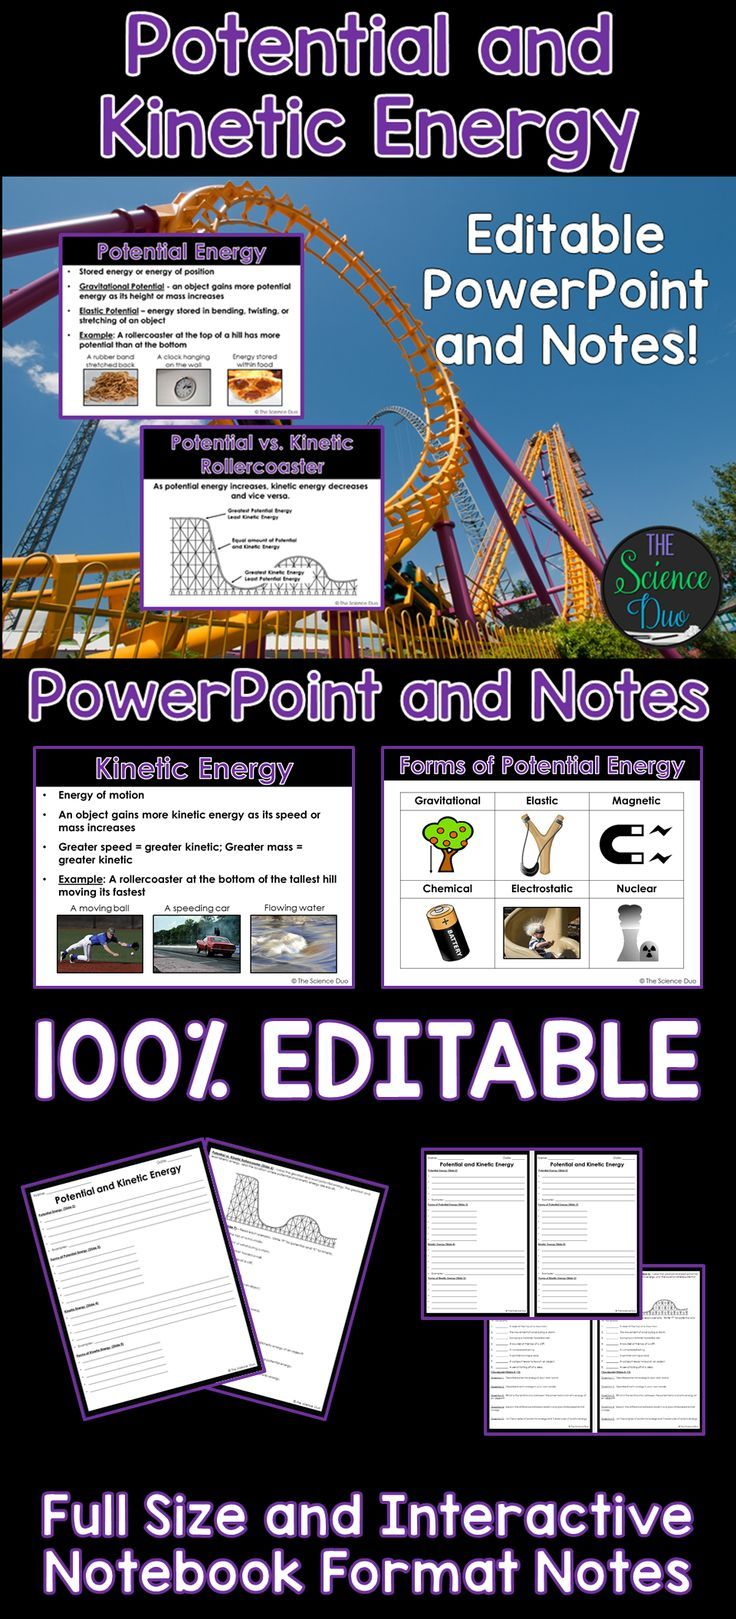 Introduce or help your students review Potential and Kinetic Energy with this PowerPoint presentation. Forms of potential and kinetic energy and examples are included.